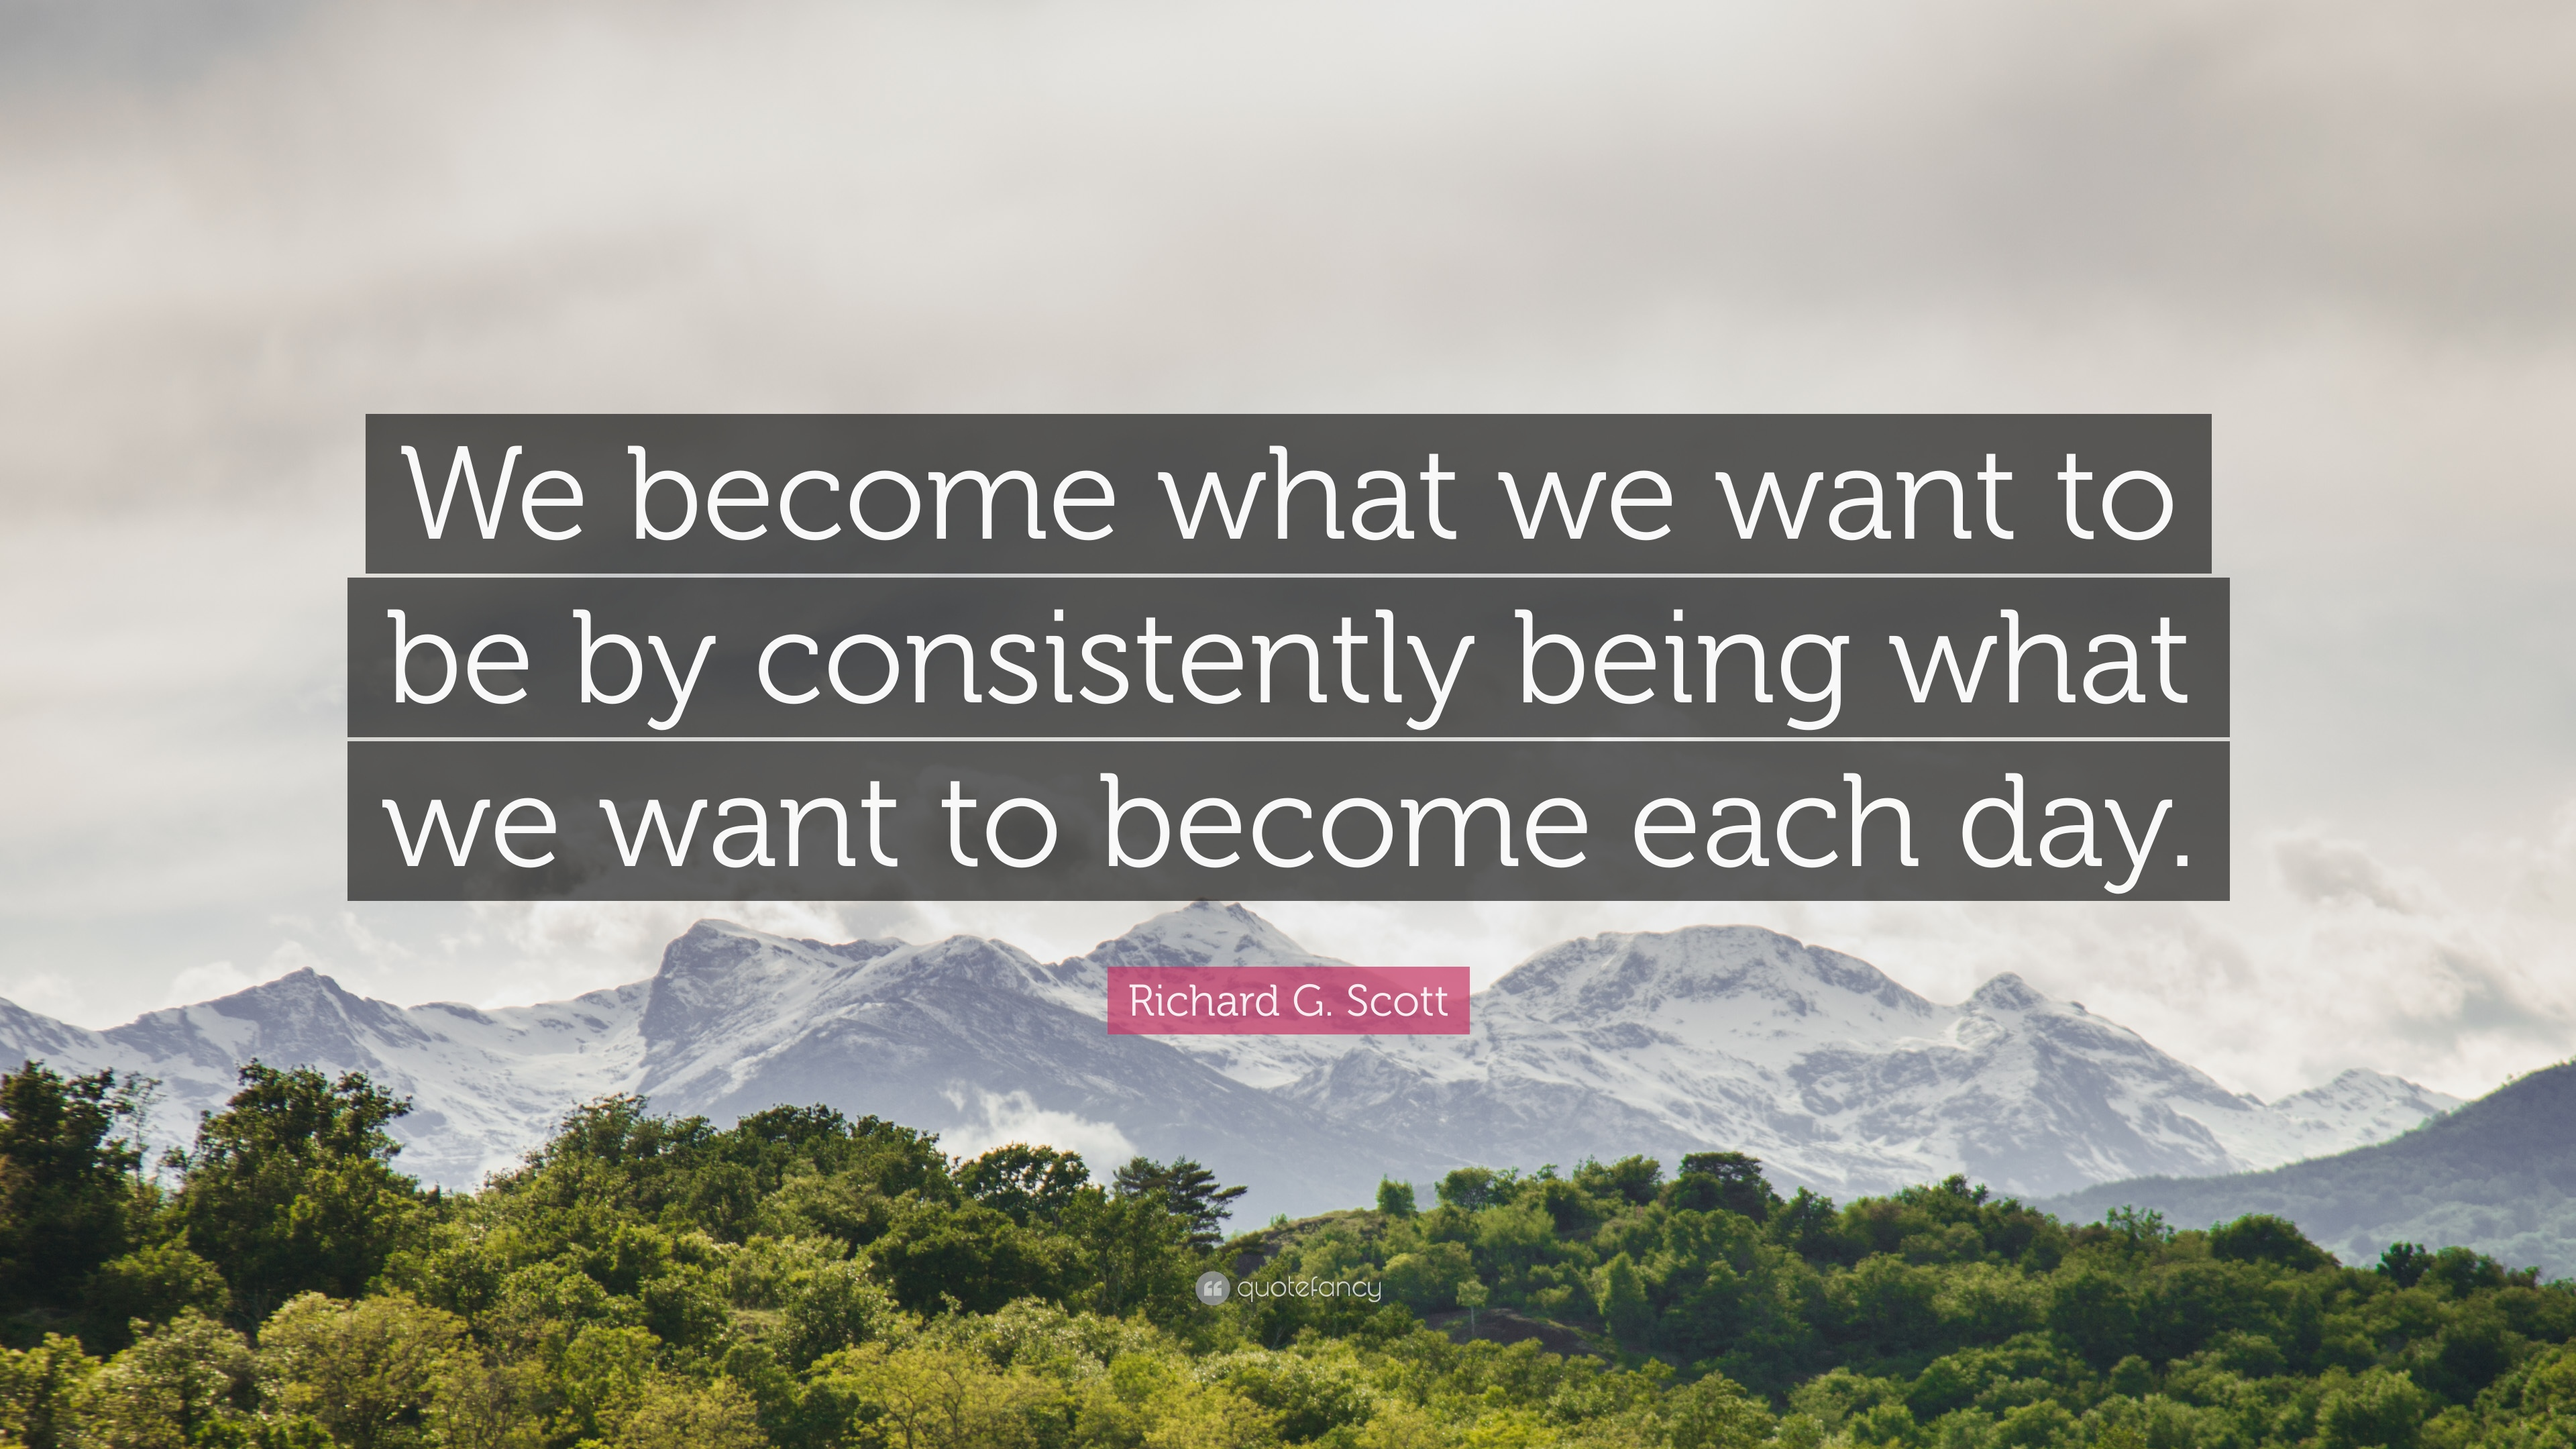 Self Improvement Quotes We Become What Want To Be By Consistently Being